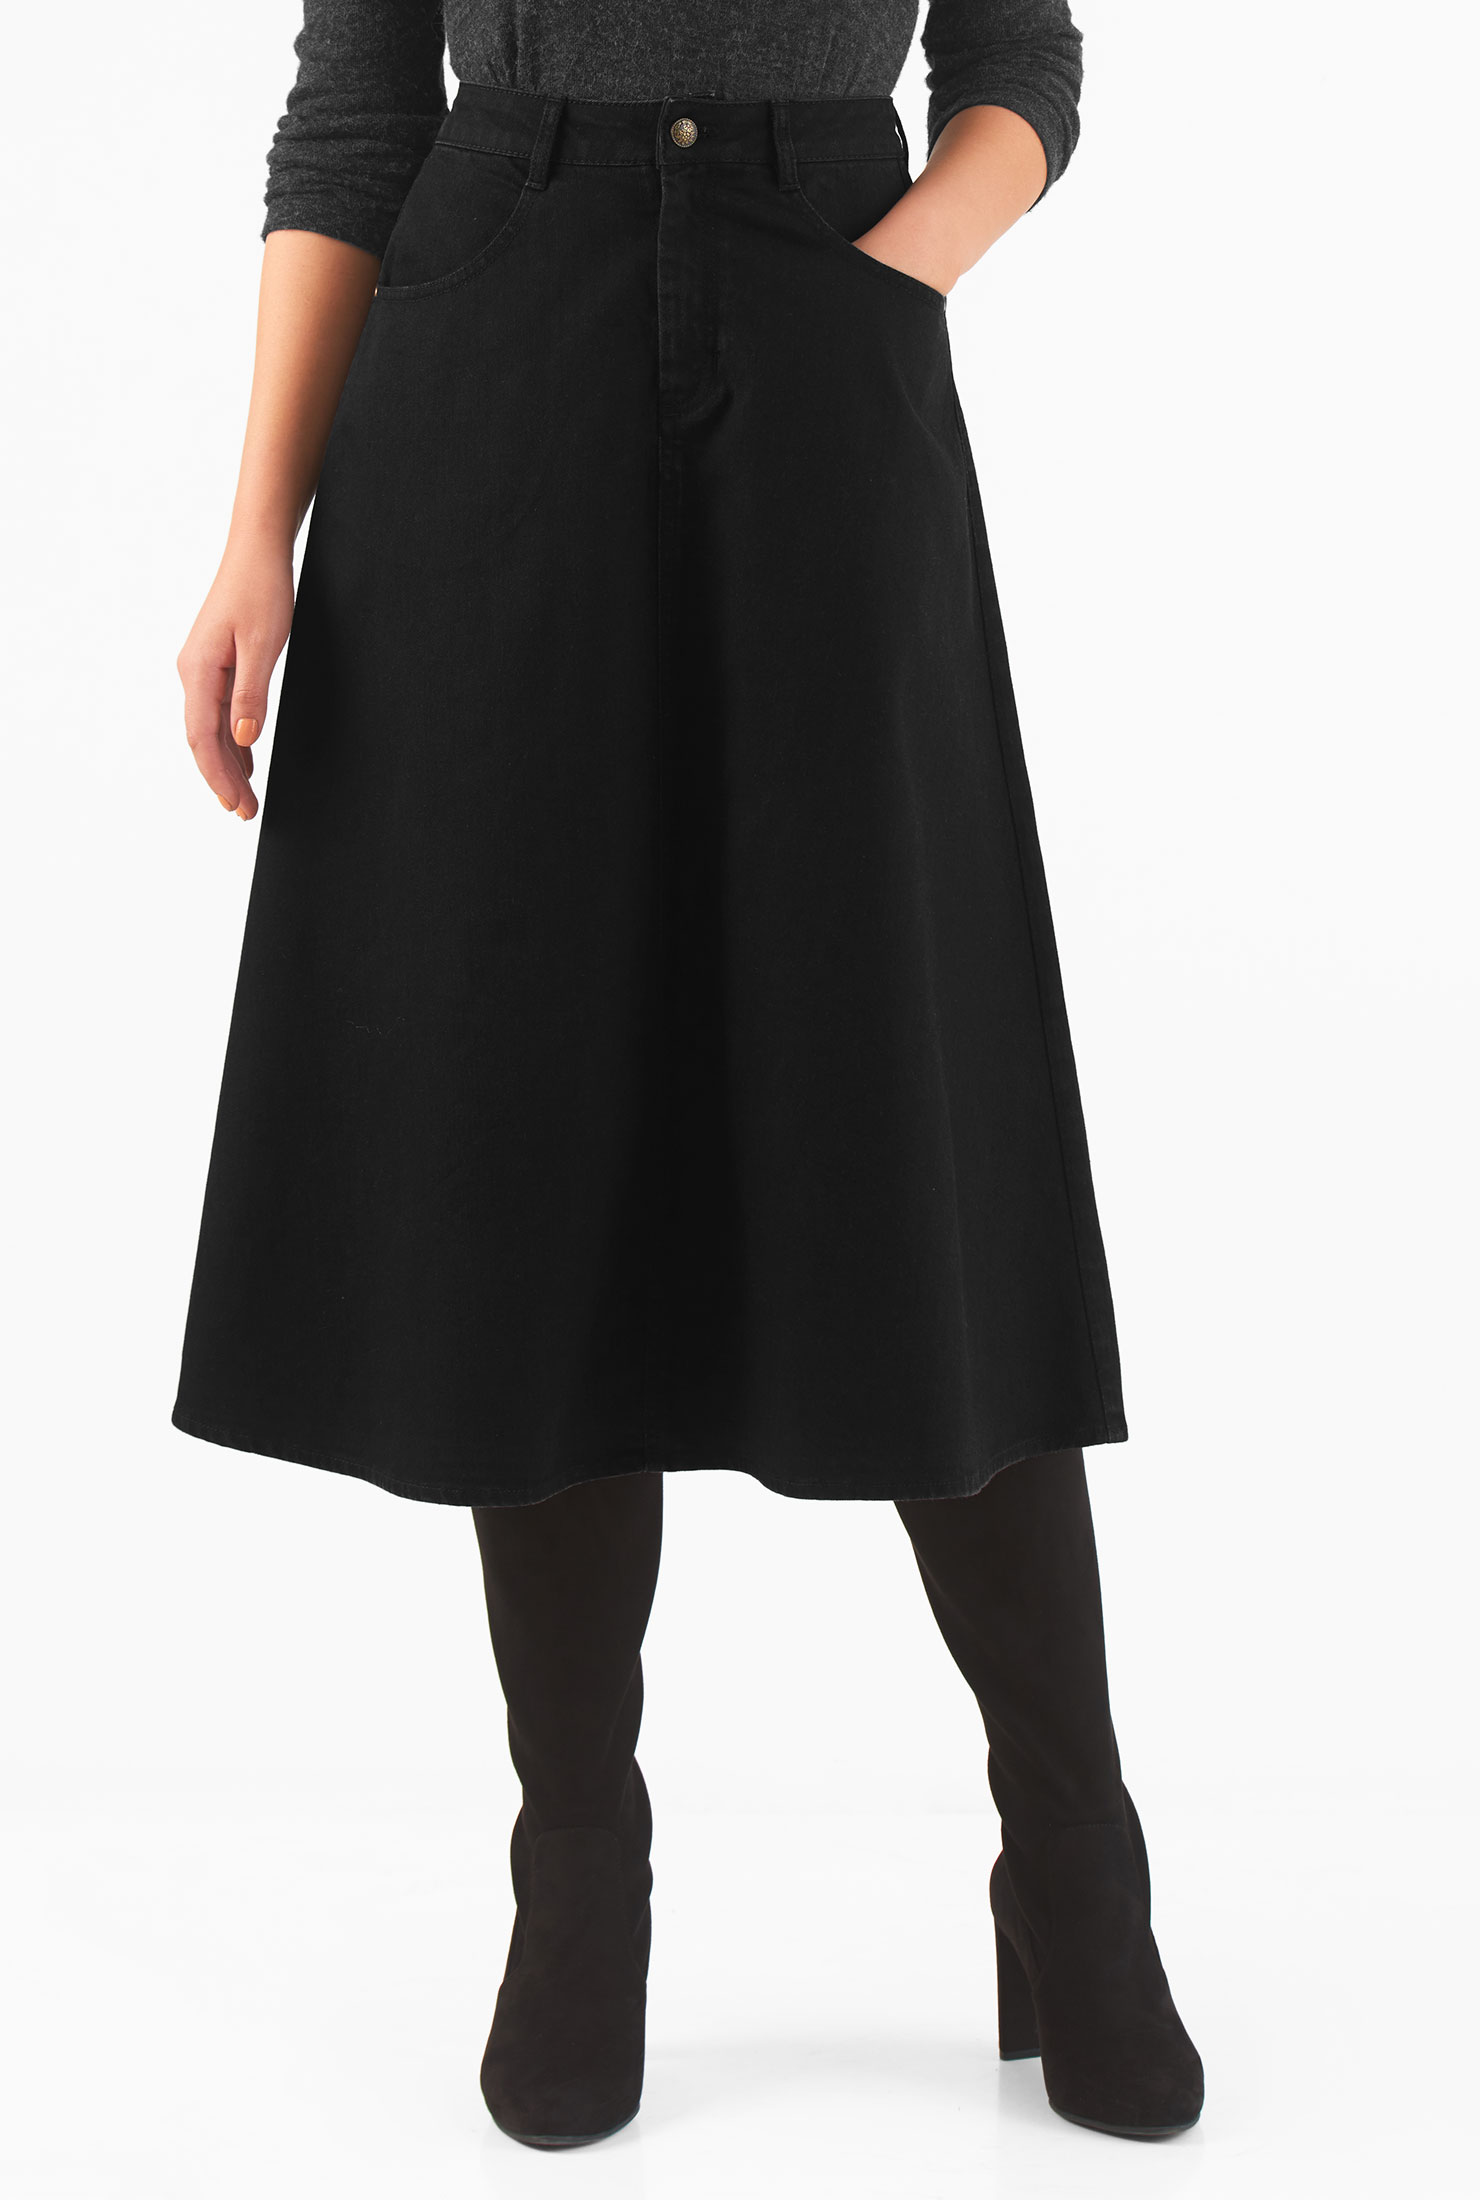 8b156e4f98 banded waist skirts, cotton spandex skirts, denim skirts, Flared Skirts,  flattering